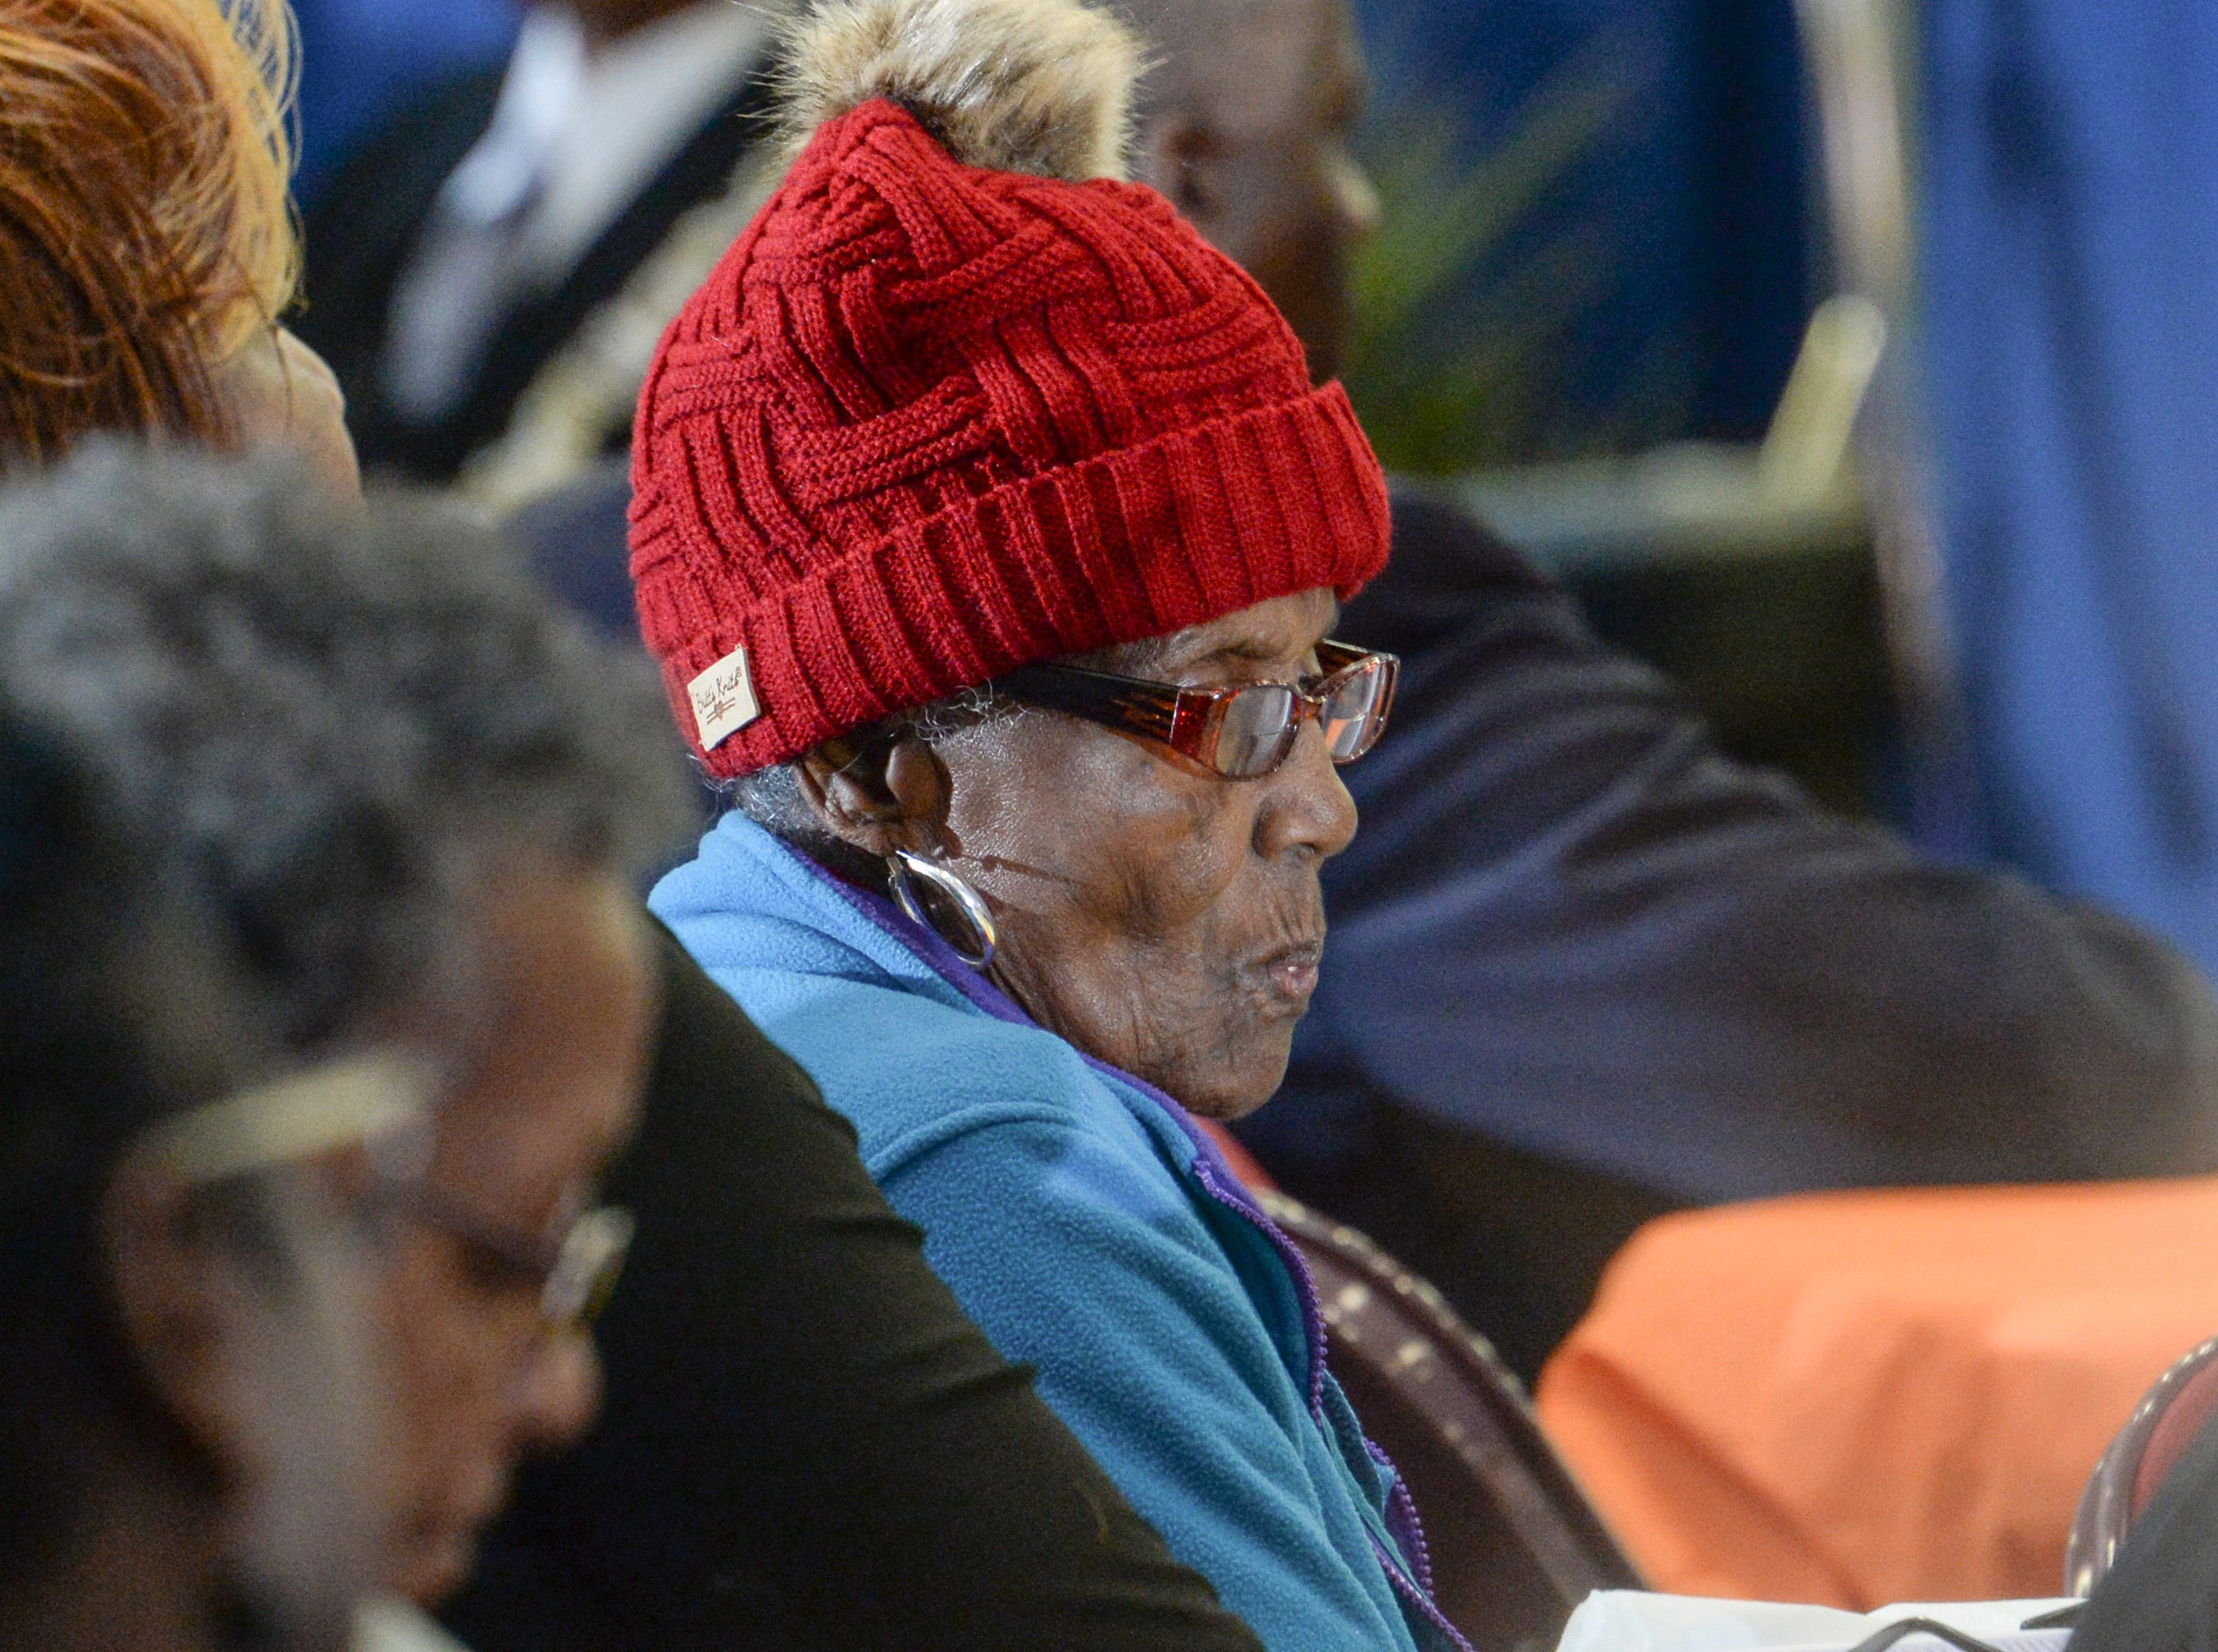 Estella Williams, a past Trailblazer award winner, listens during the Mayor's Martin Luther King Jr Breakfast in the Anderson Civic Center Friday, January 18, 2019.